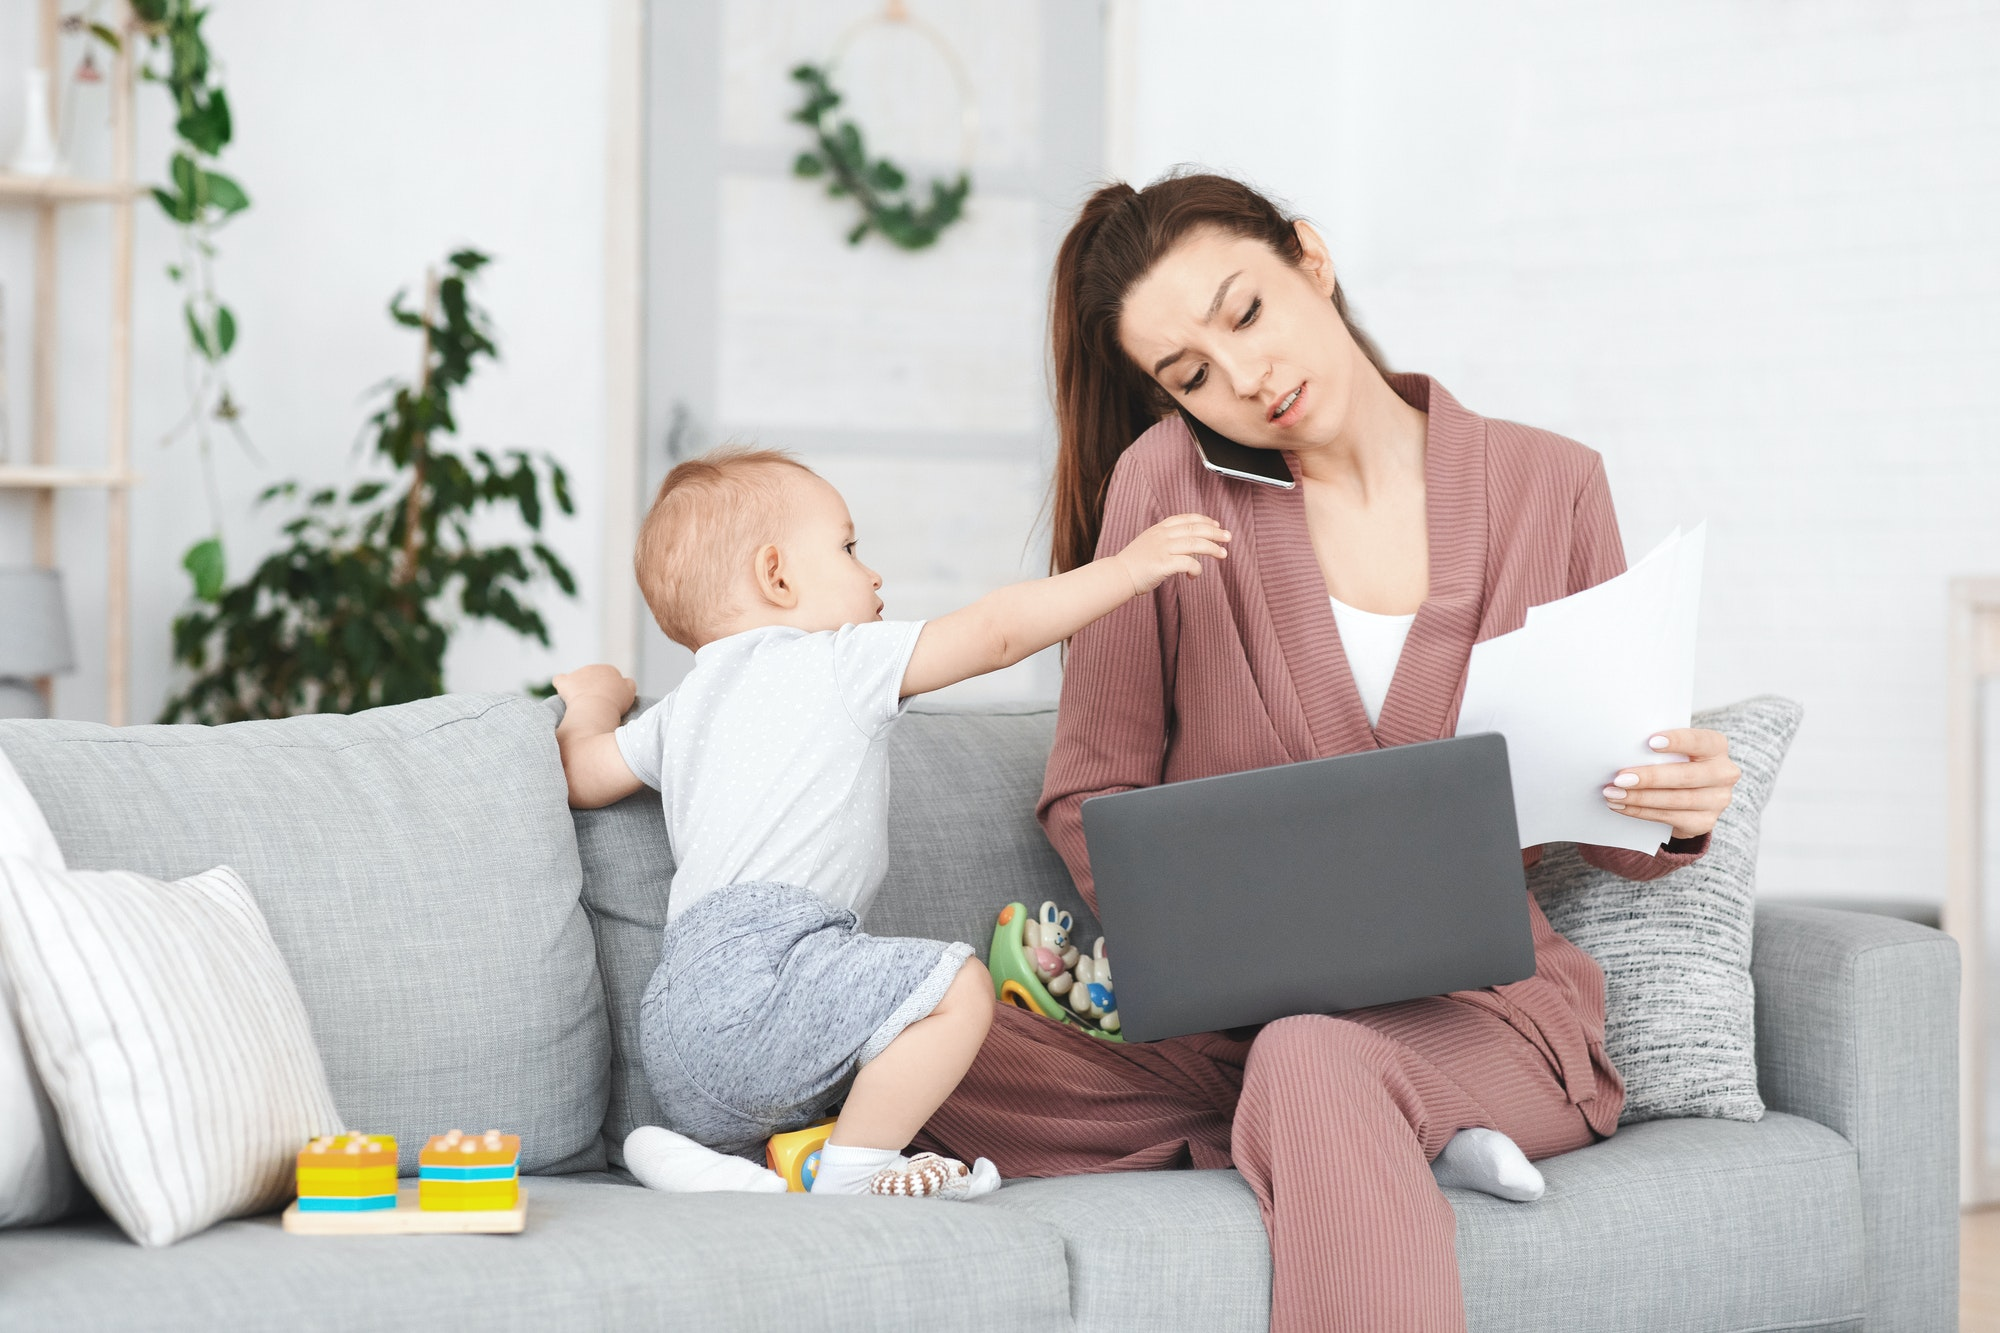 Business And Maternity. Annoyed mom trying to work while toddler distracting her